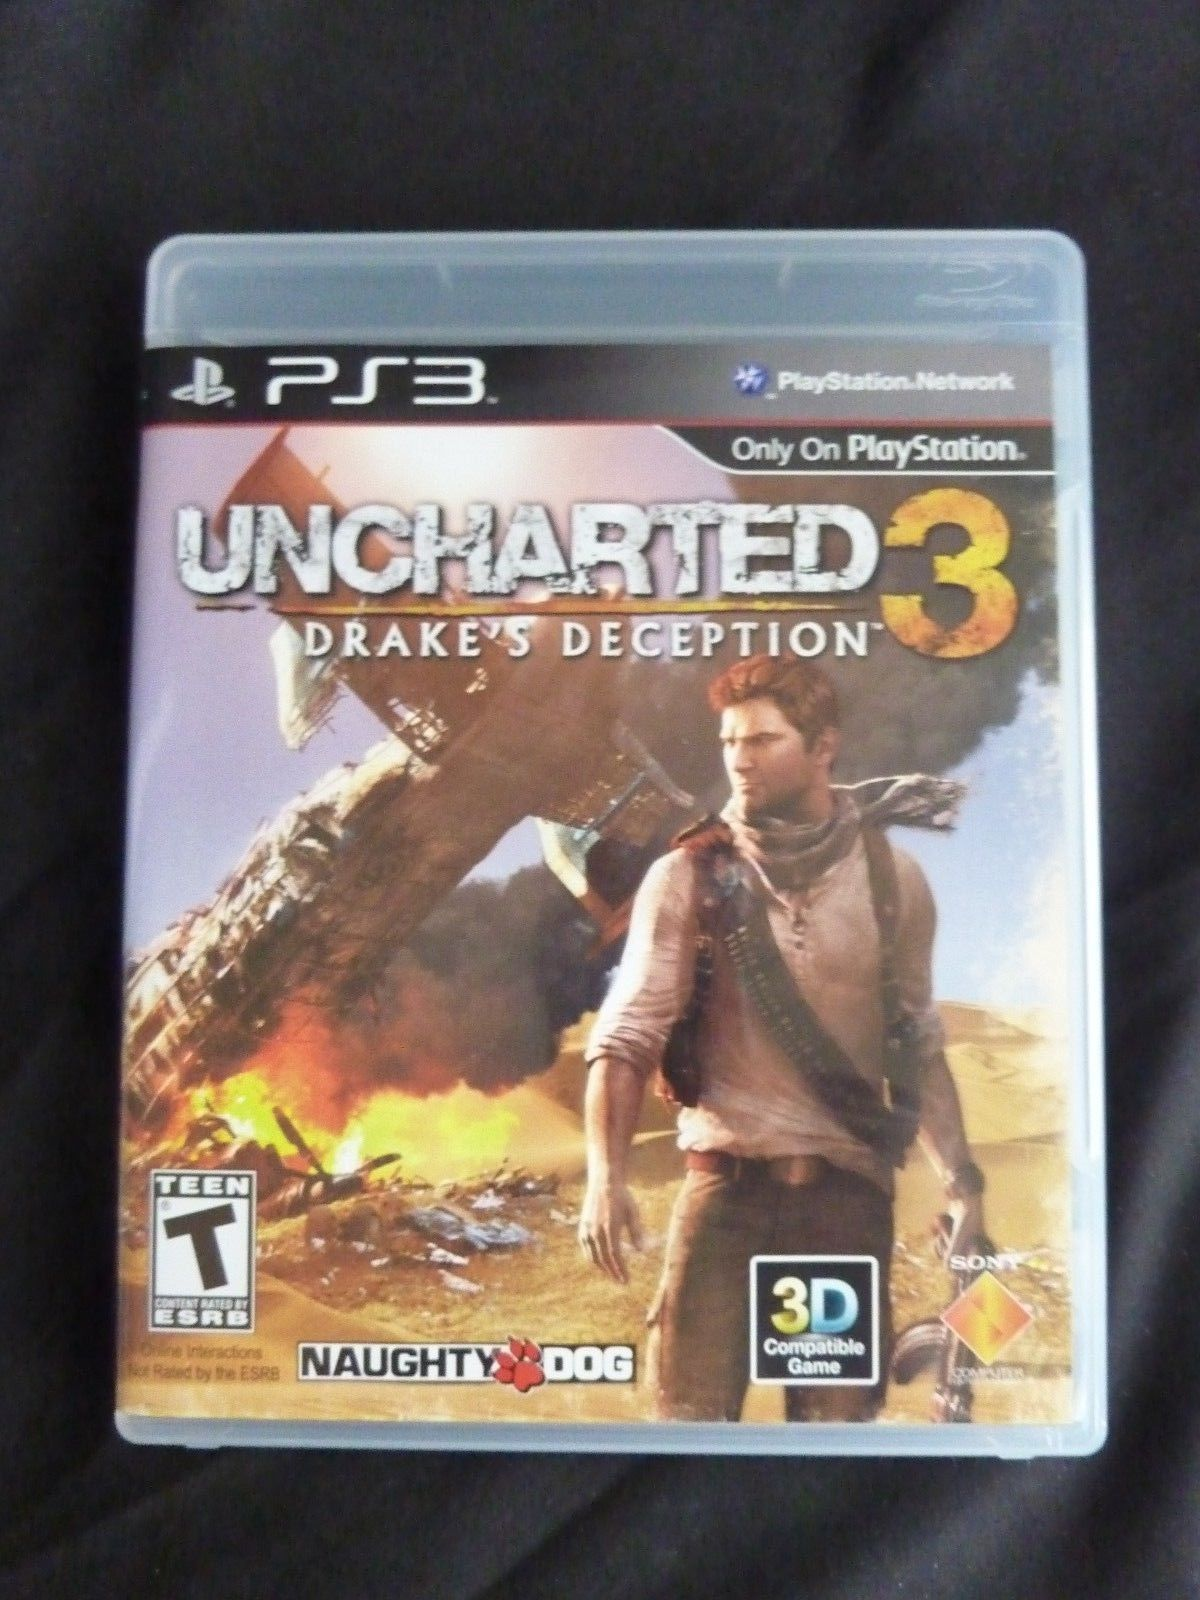 Primary image for PlayStation 3 : Uncharted 3: Drakes Deception Video Games